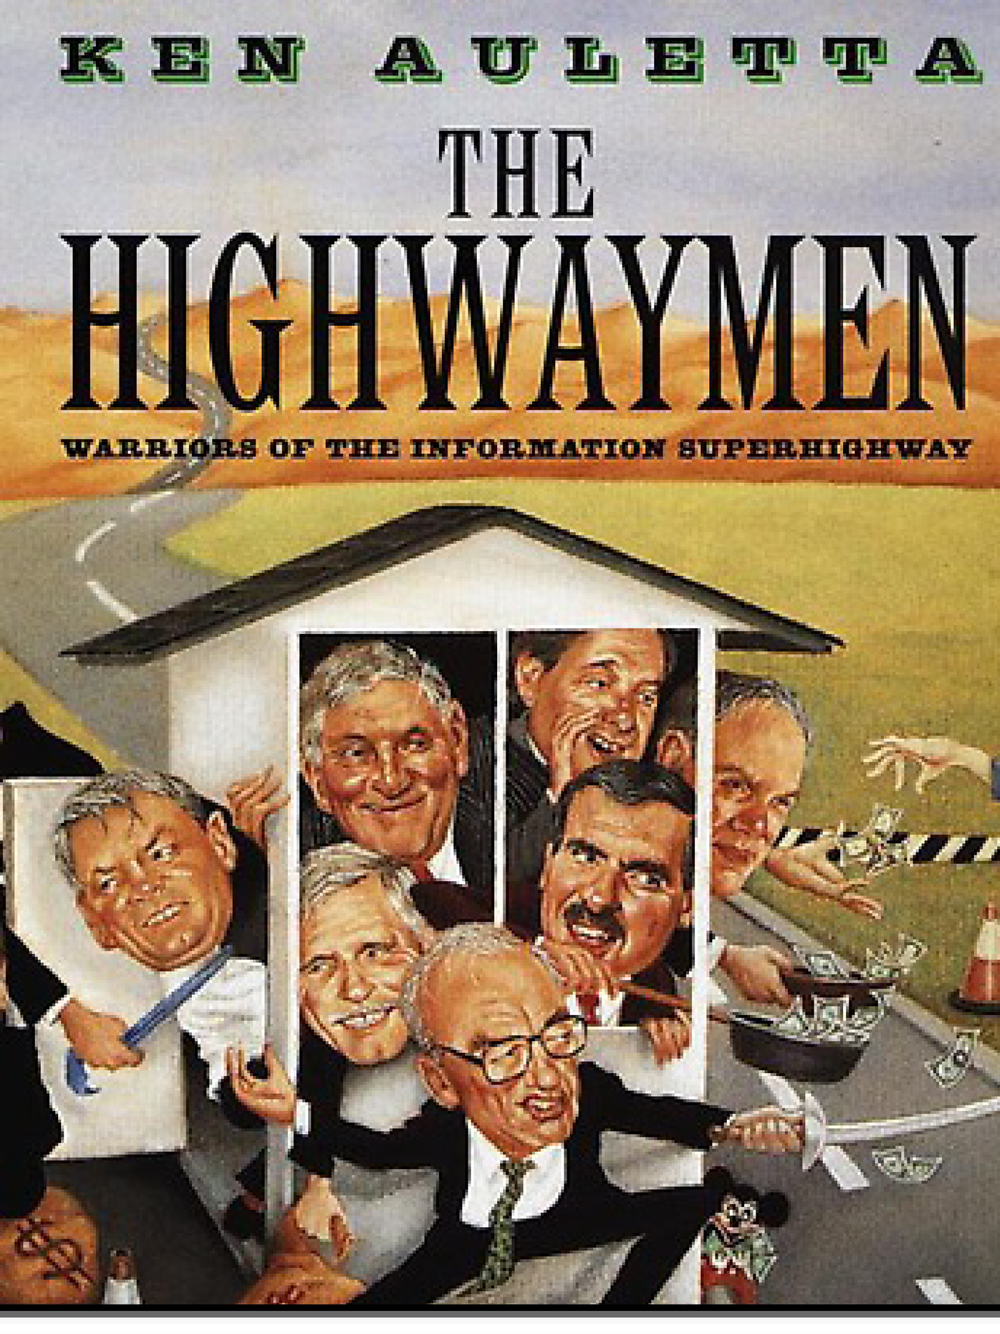 The Highwaymen: Warriors of the Information Superhighway Ken Auletta 2011